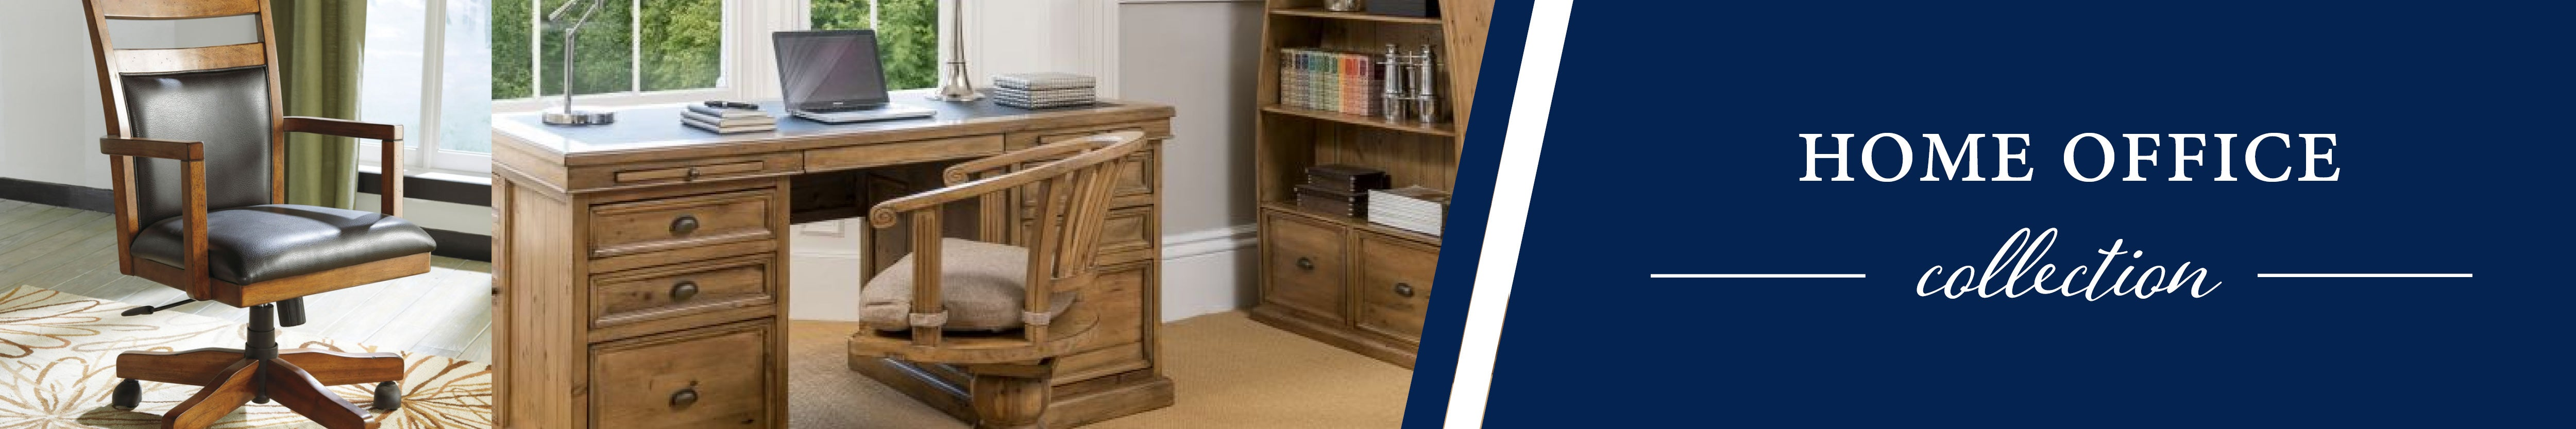 HomePlus Furniture | Home Office Collection